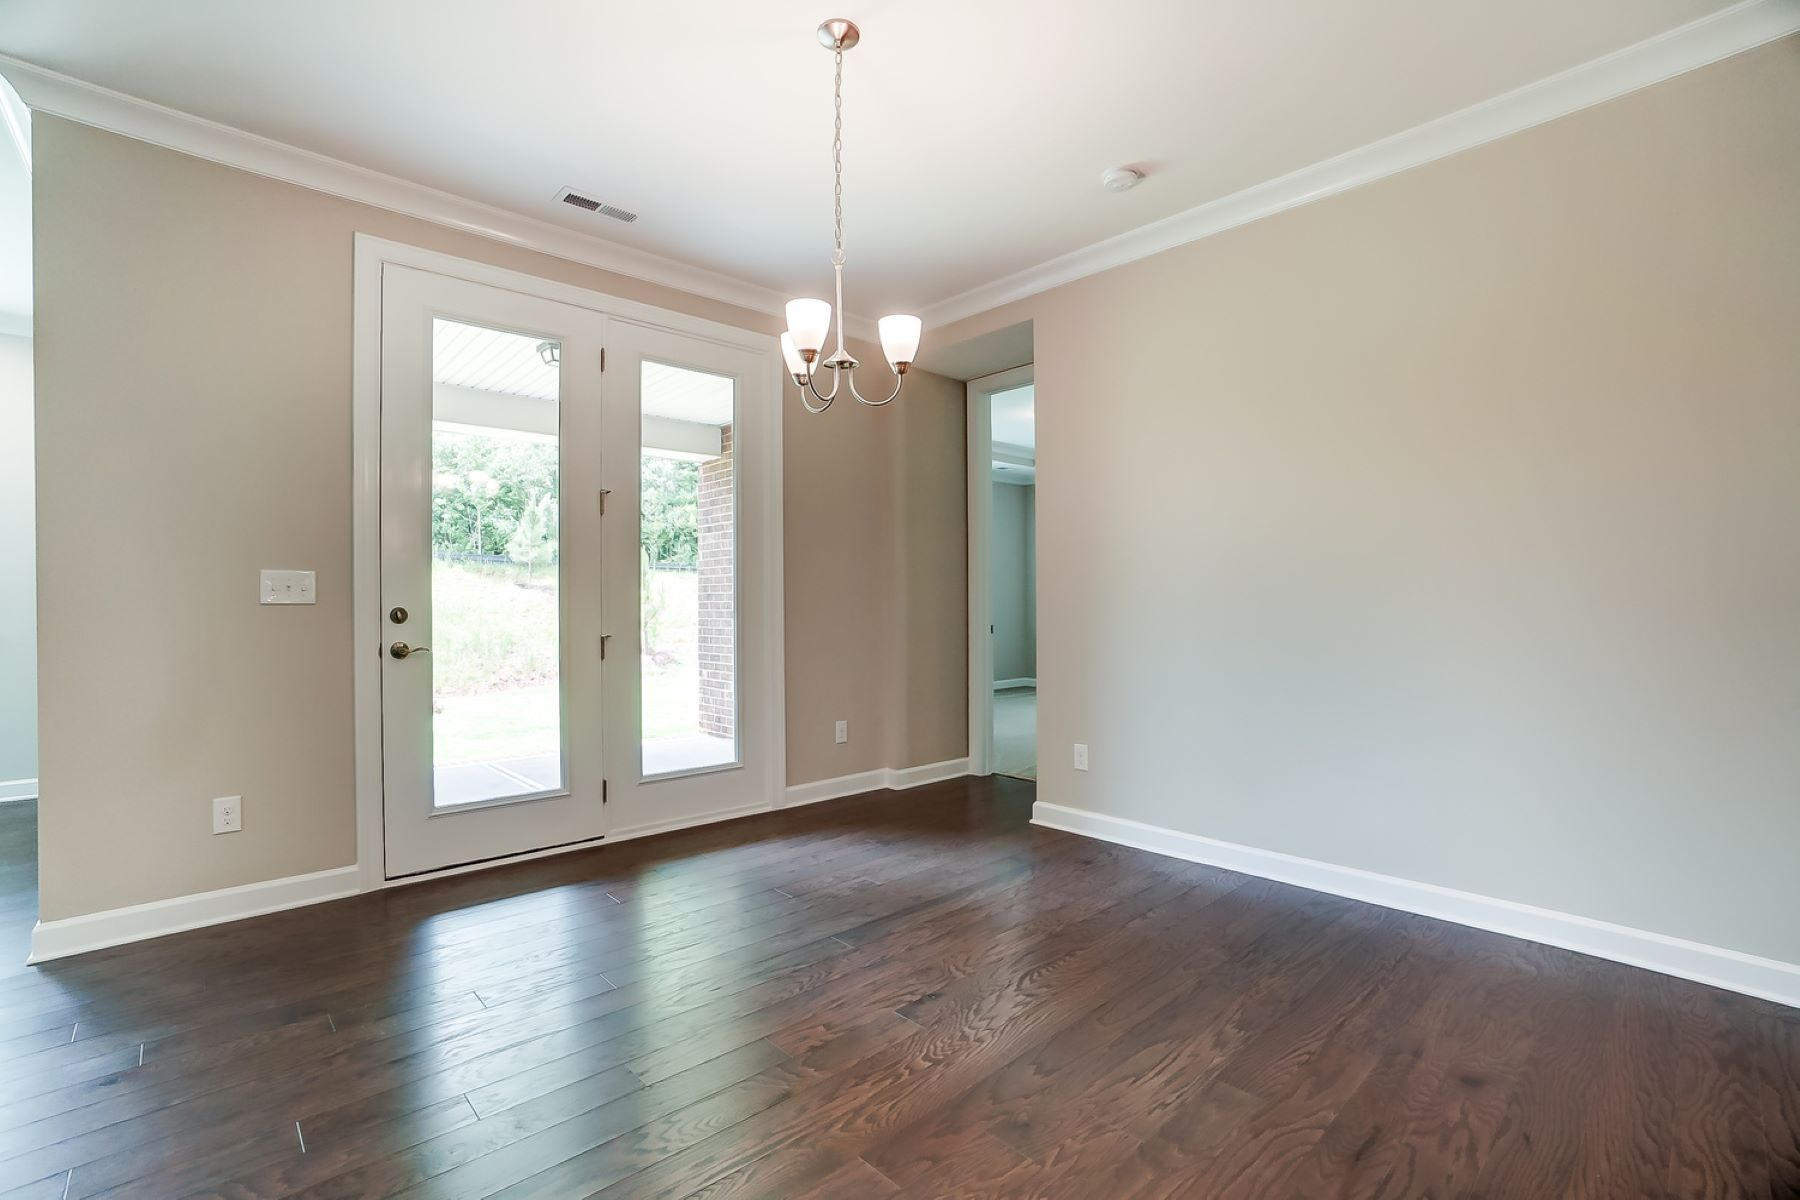 Astaire Plan Breakfast at Sonata at Mint Hill in Mint Hill North Carolina by Mattamy Homes